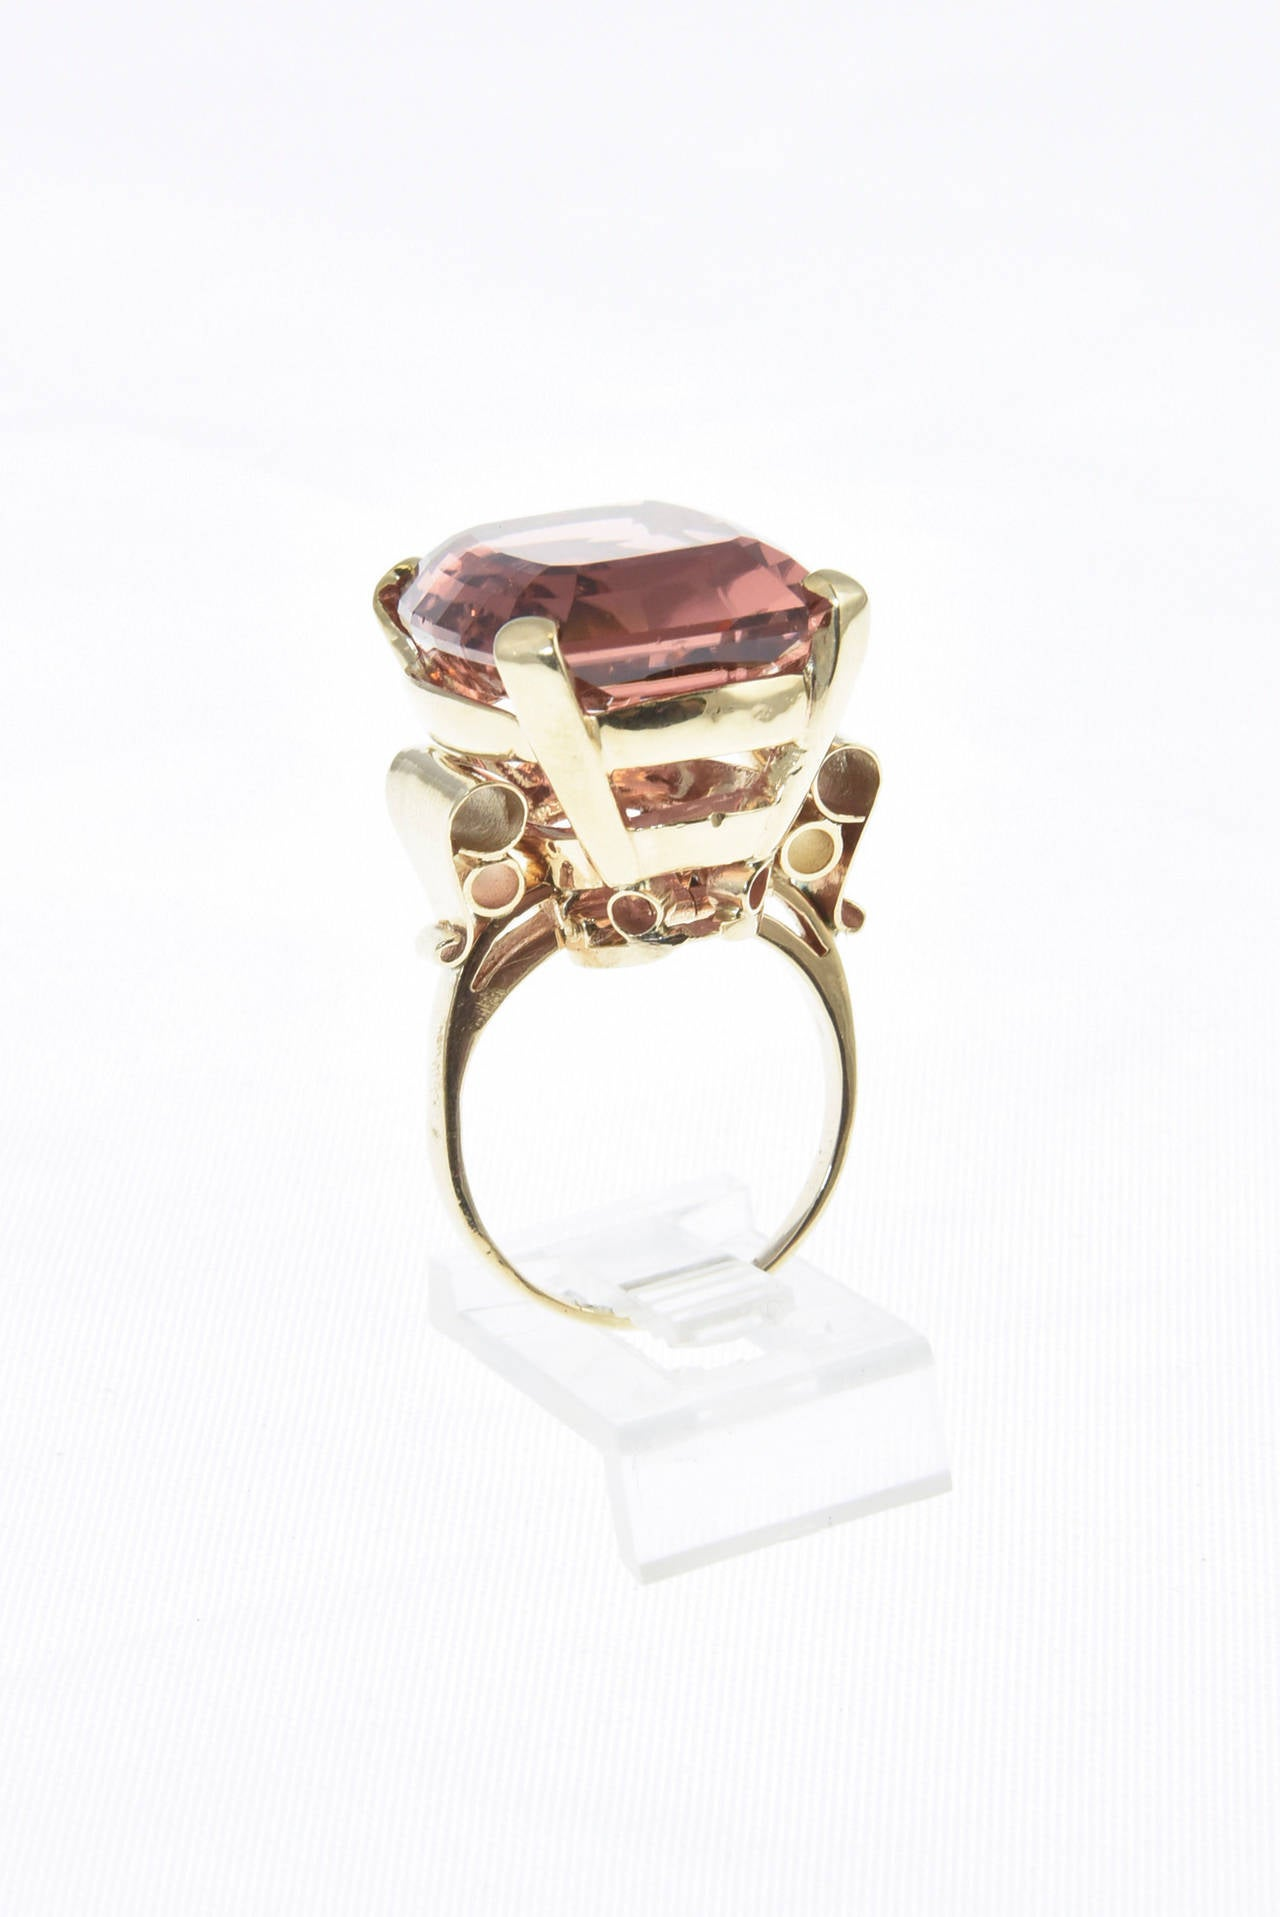 Large High Quality Peach Pink Tourmaline Gold Cocktail